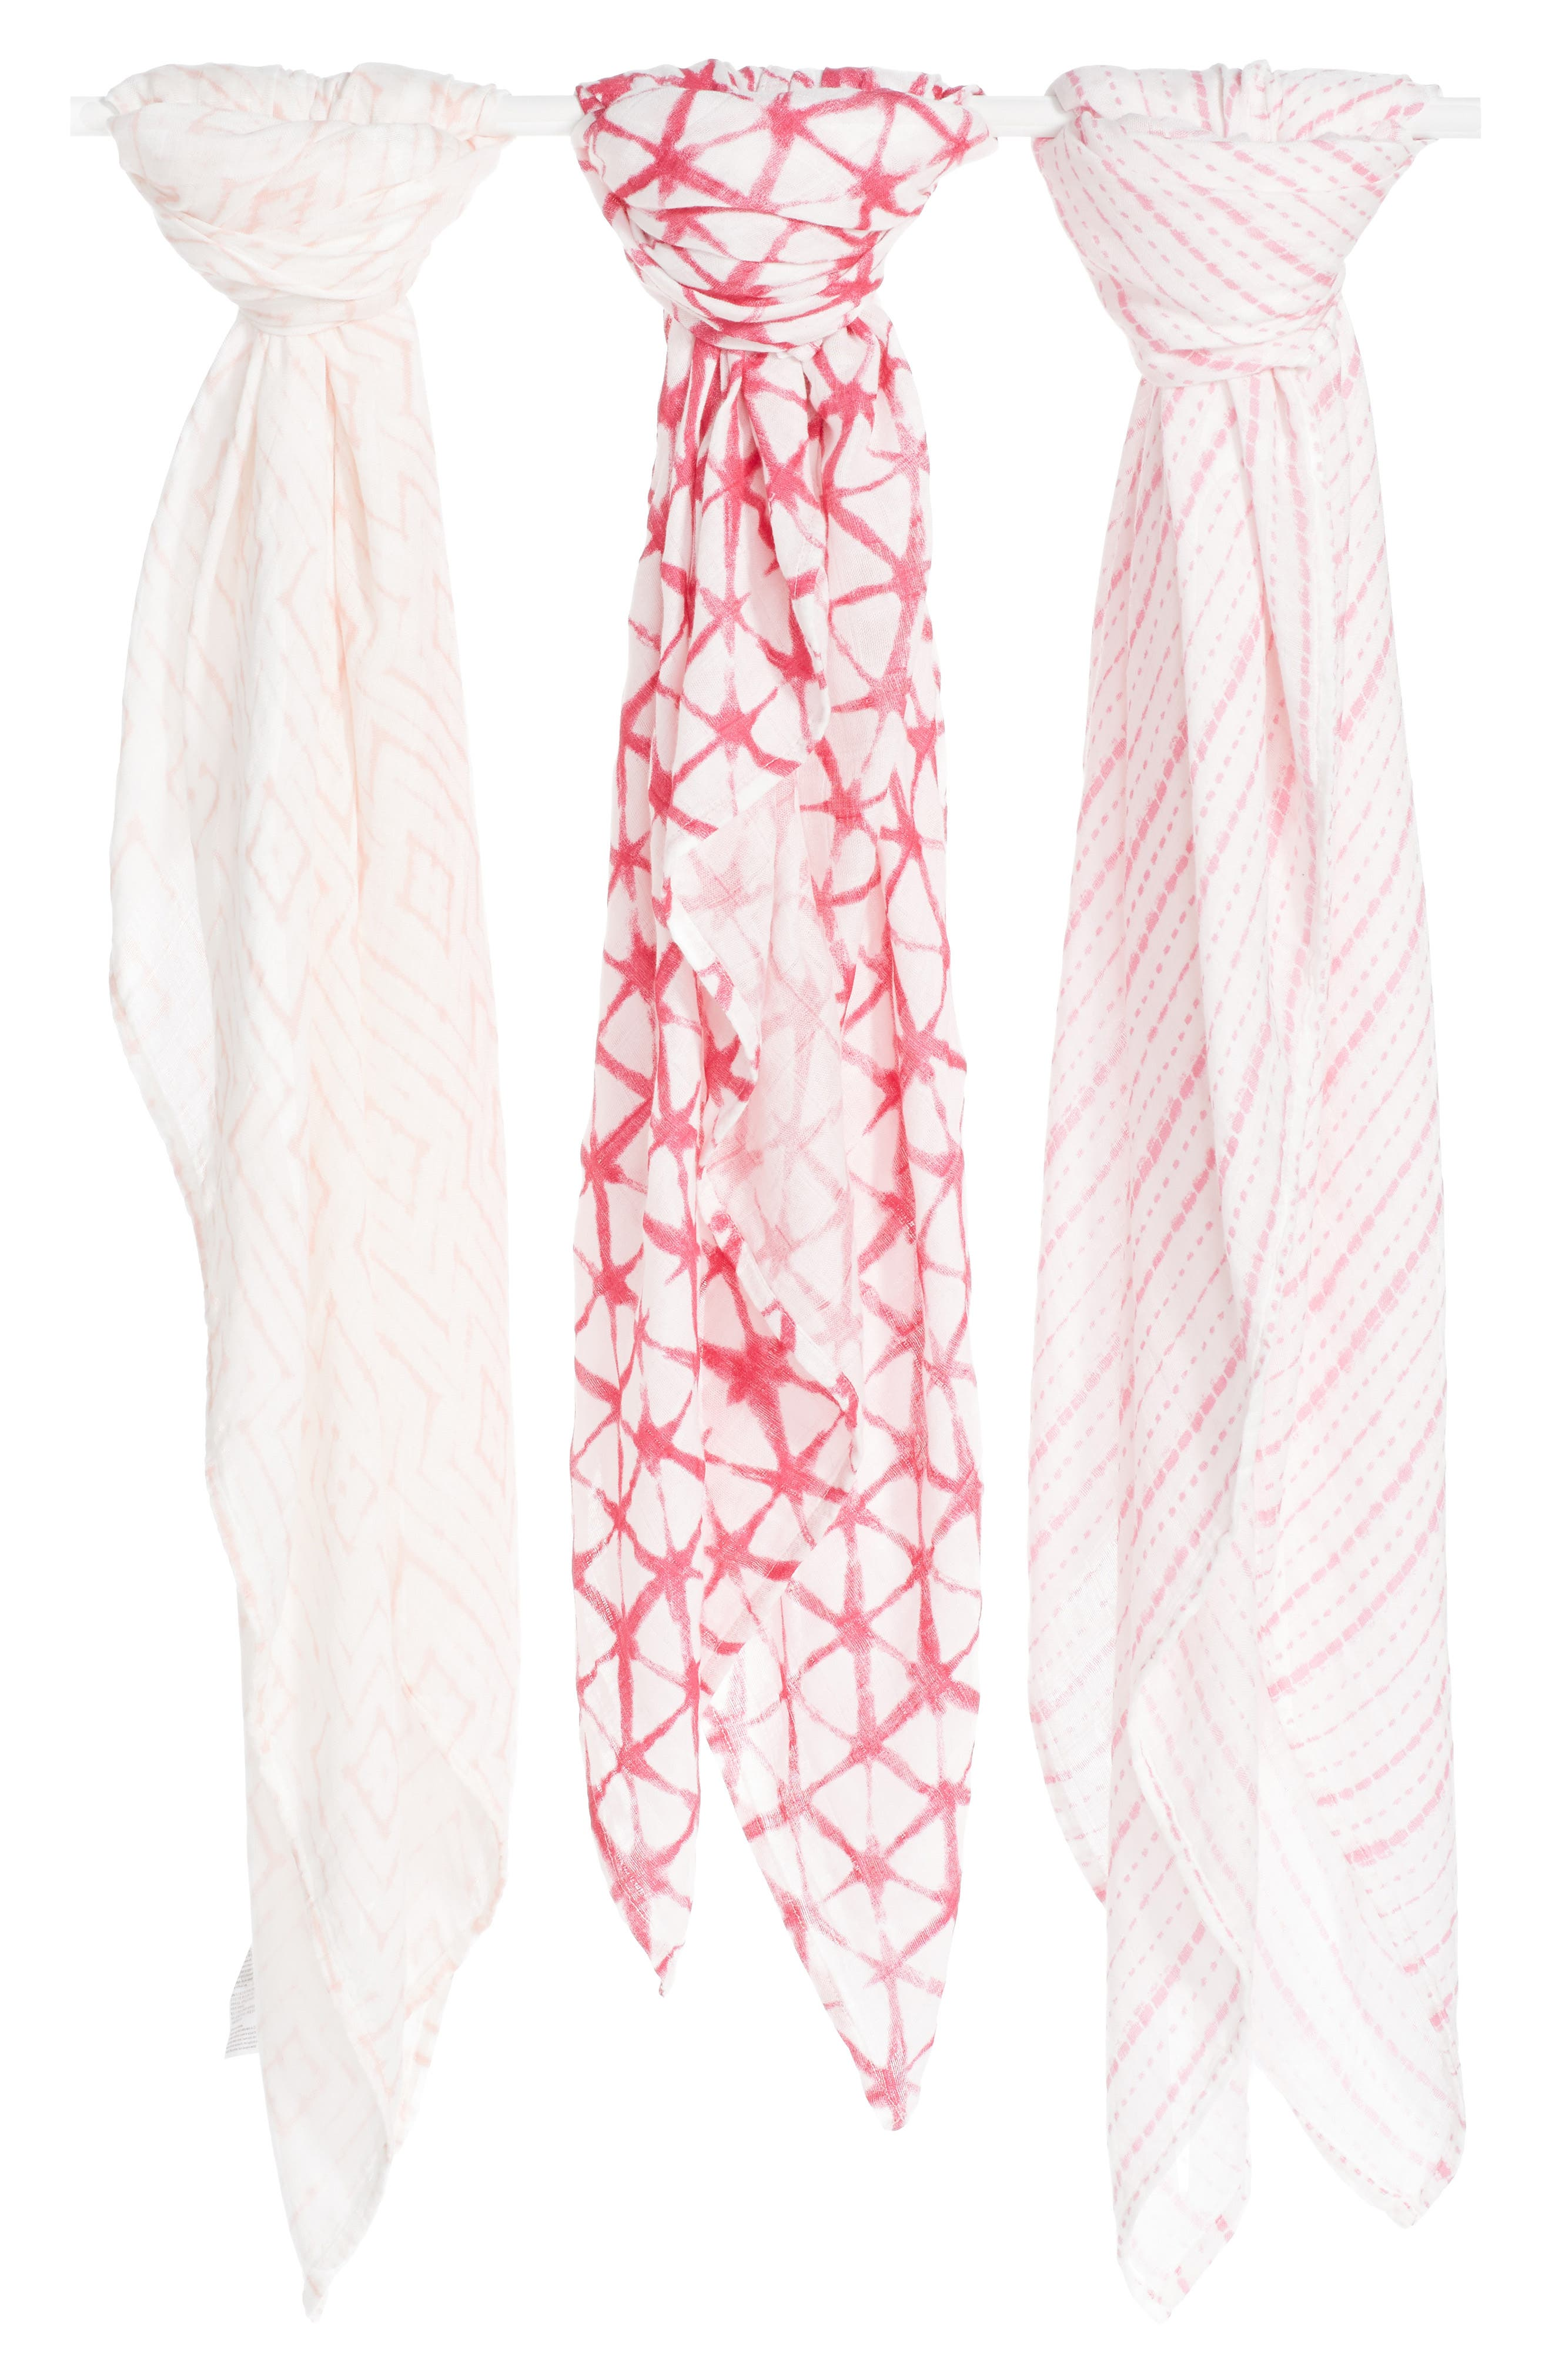 Main Image - aden + anais 3-Pack Silky Soft Swaddling Cloths